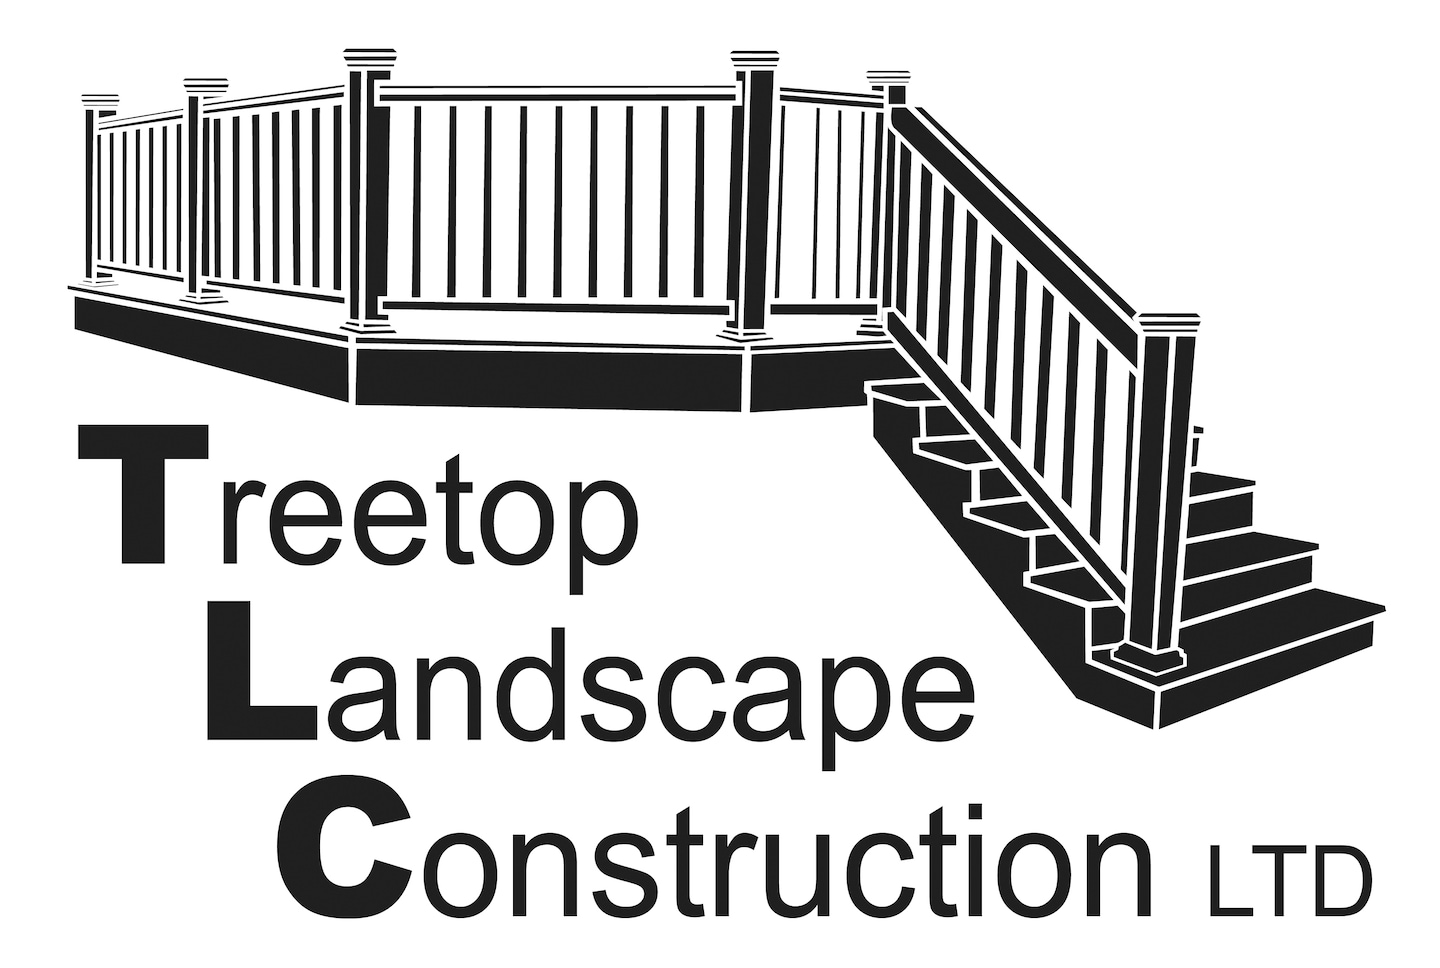 TREETOP LANDSCAPE CONSTRUCTION ltd.